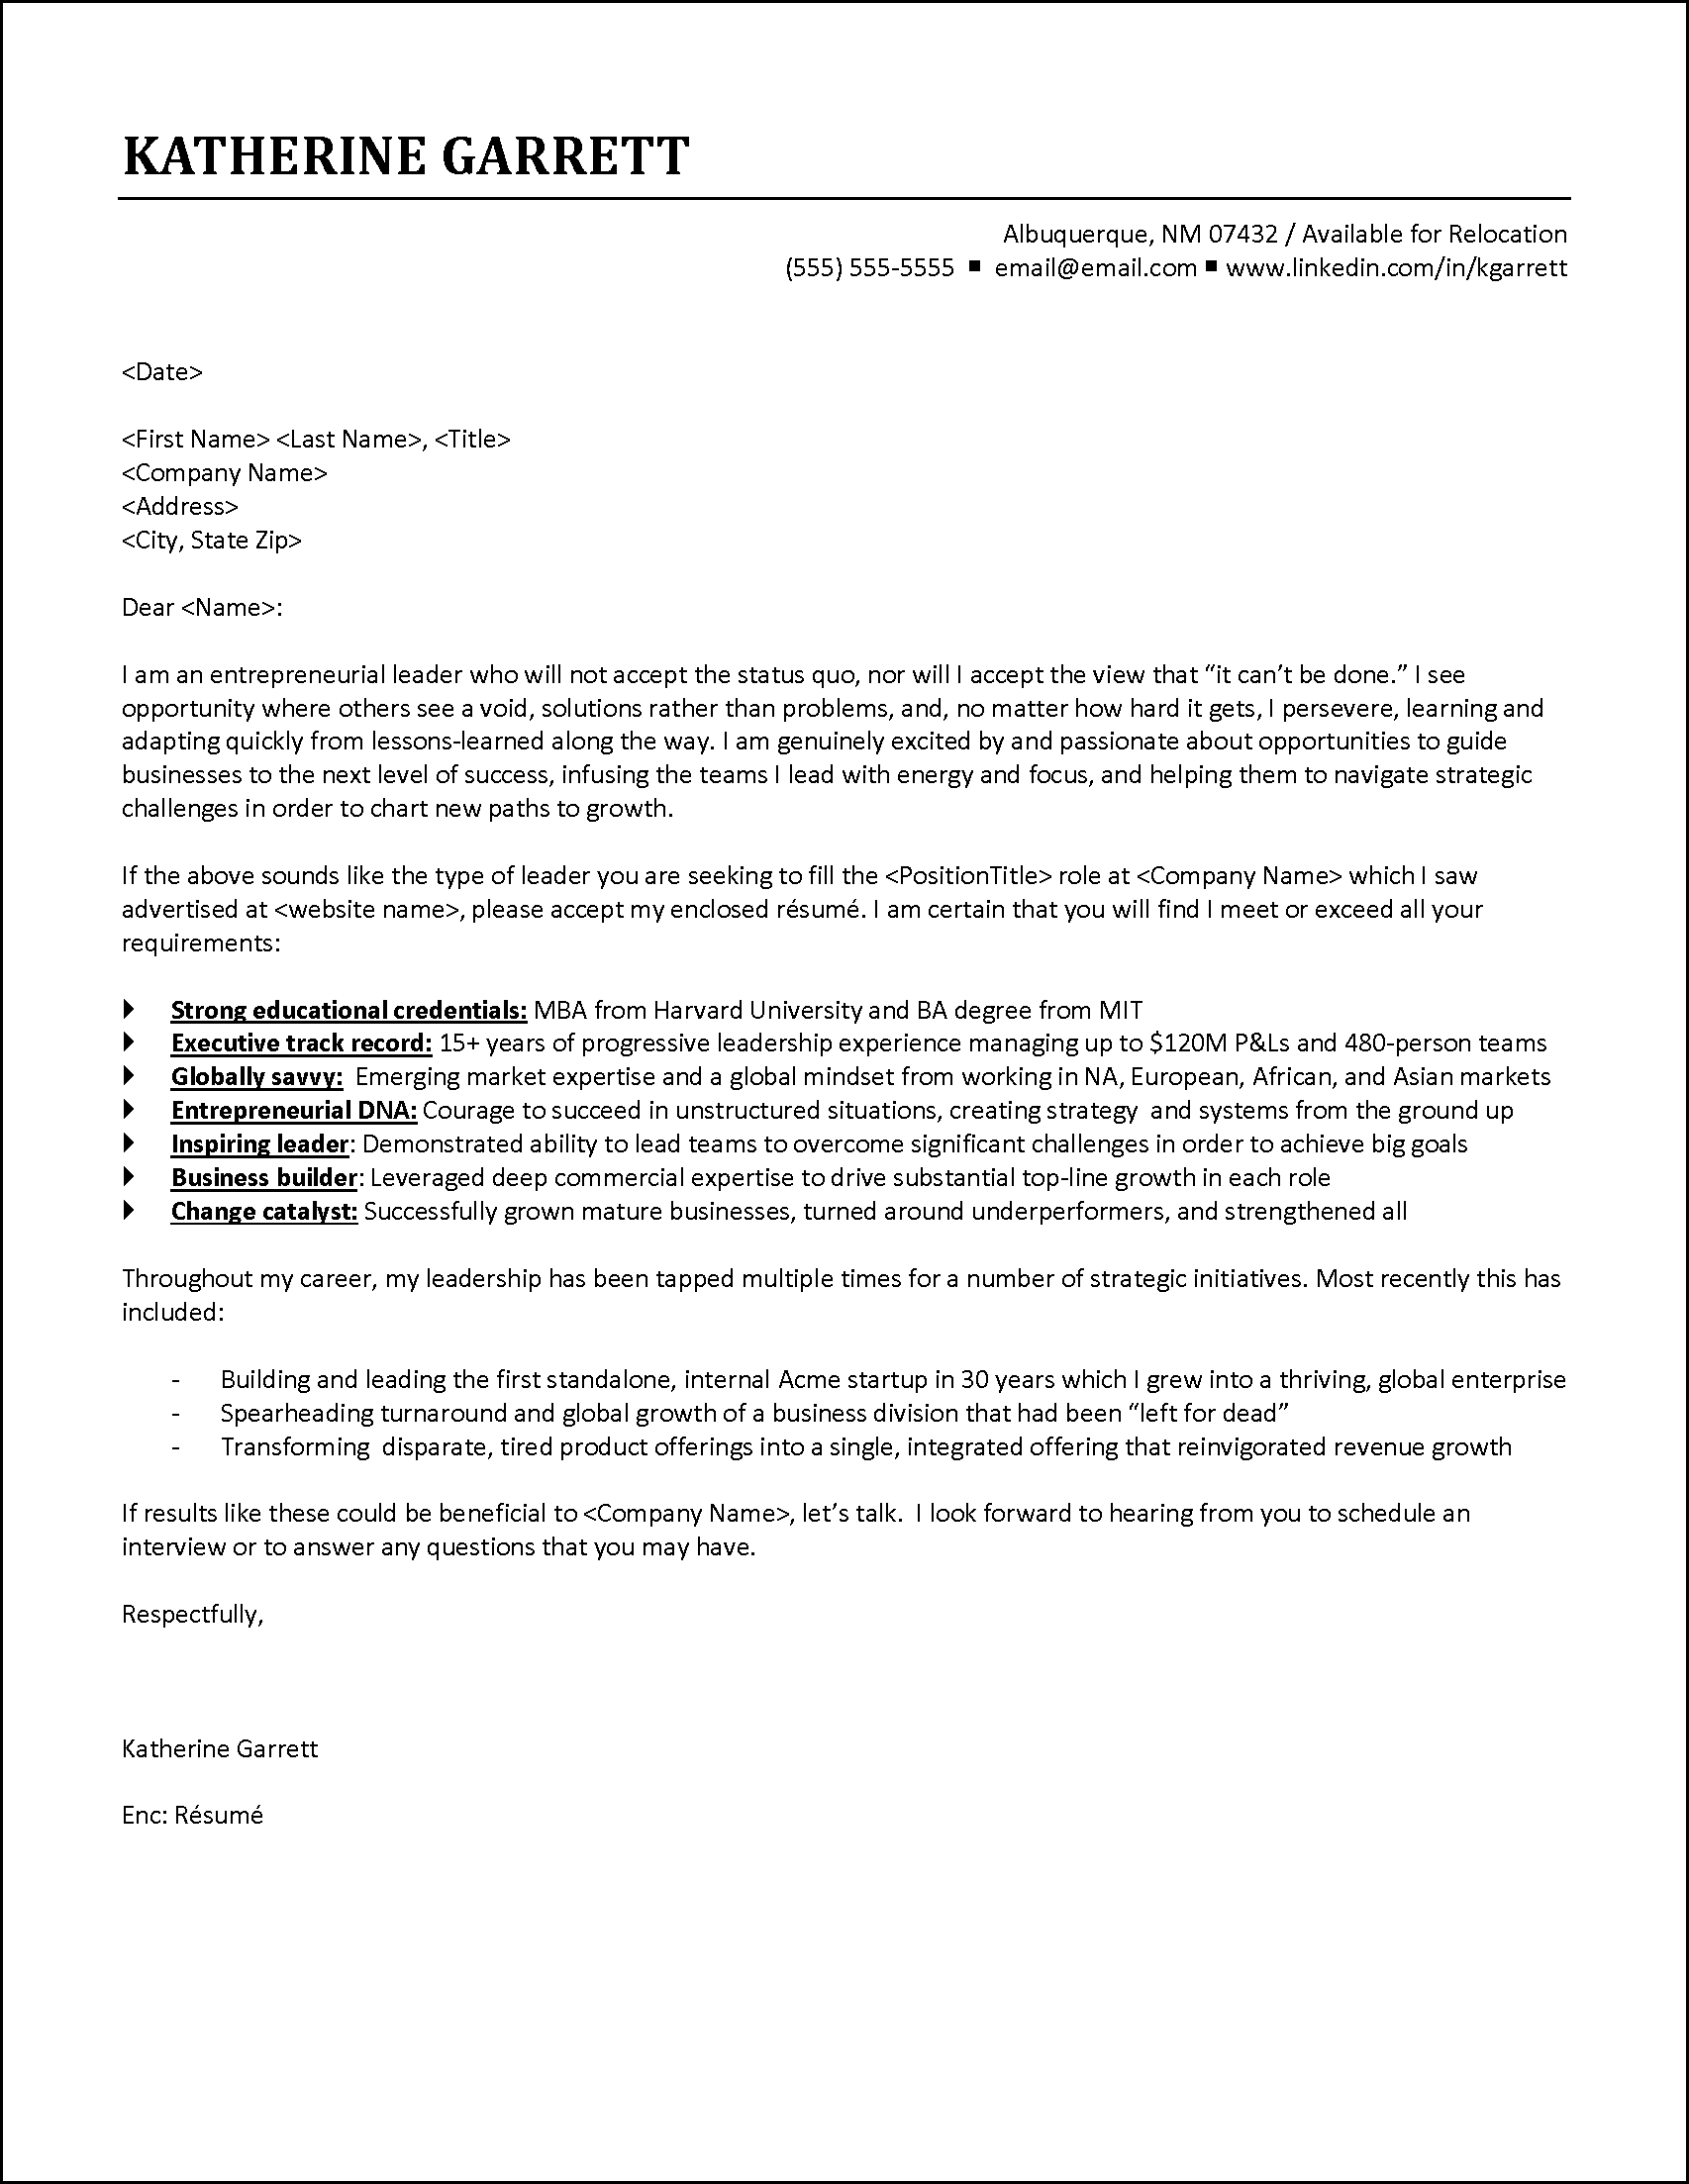 cover letter example executive responds to job announcement - Modern Cover Letter Examples